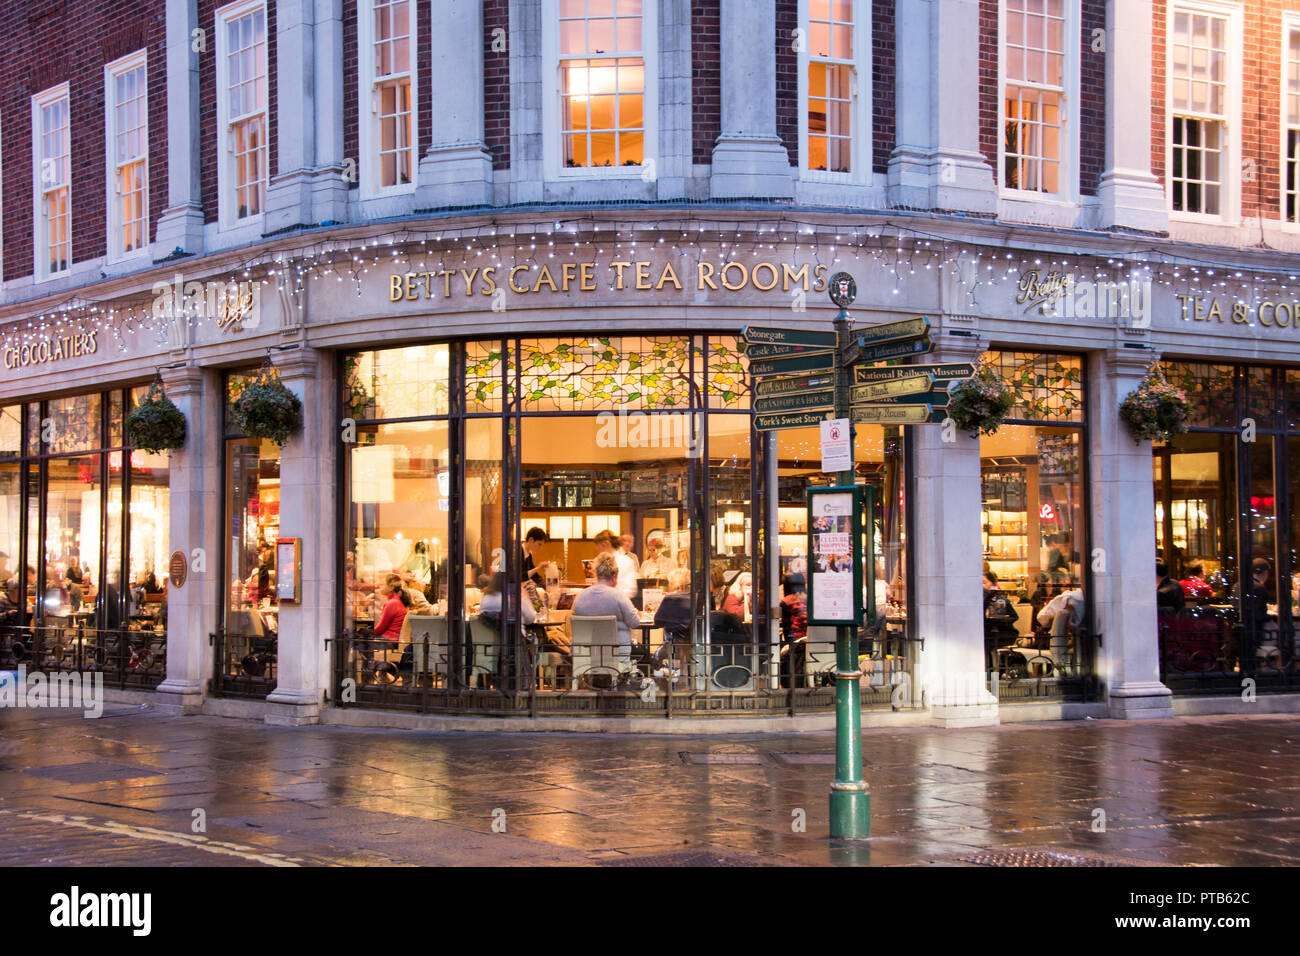 York, UK – 12 Dec 2016: A Christmas shoppers take a break and refreshments at Bettys cafe and tea rooms on 12 Dec at St Helen's Square, York Stock Photo